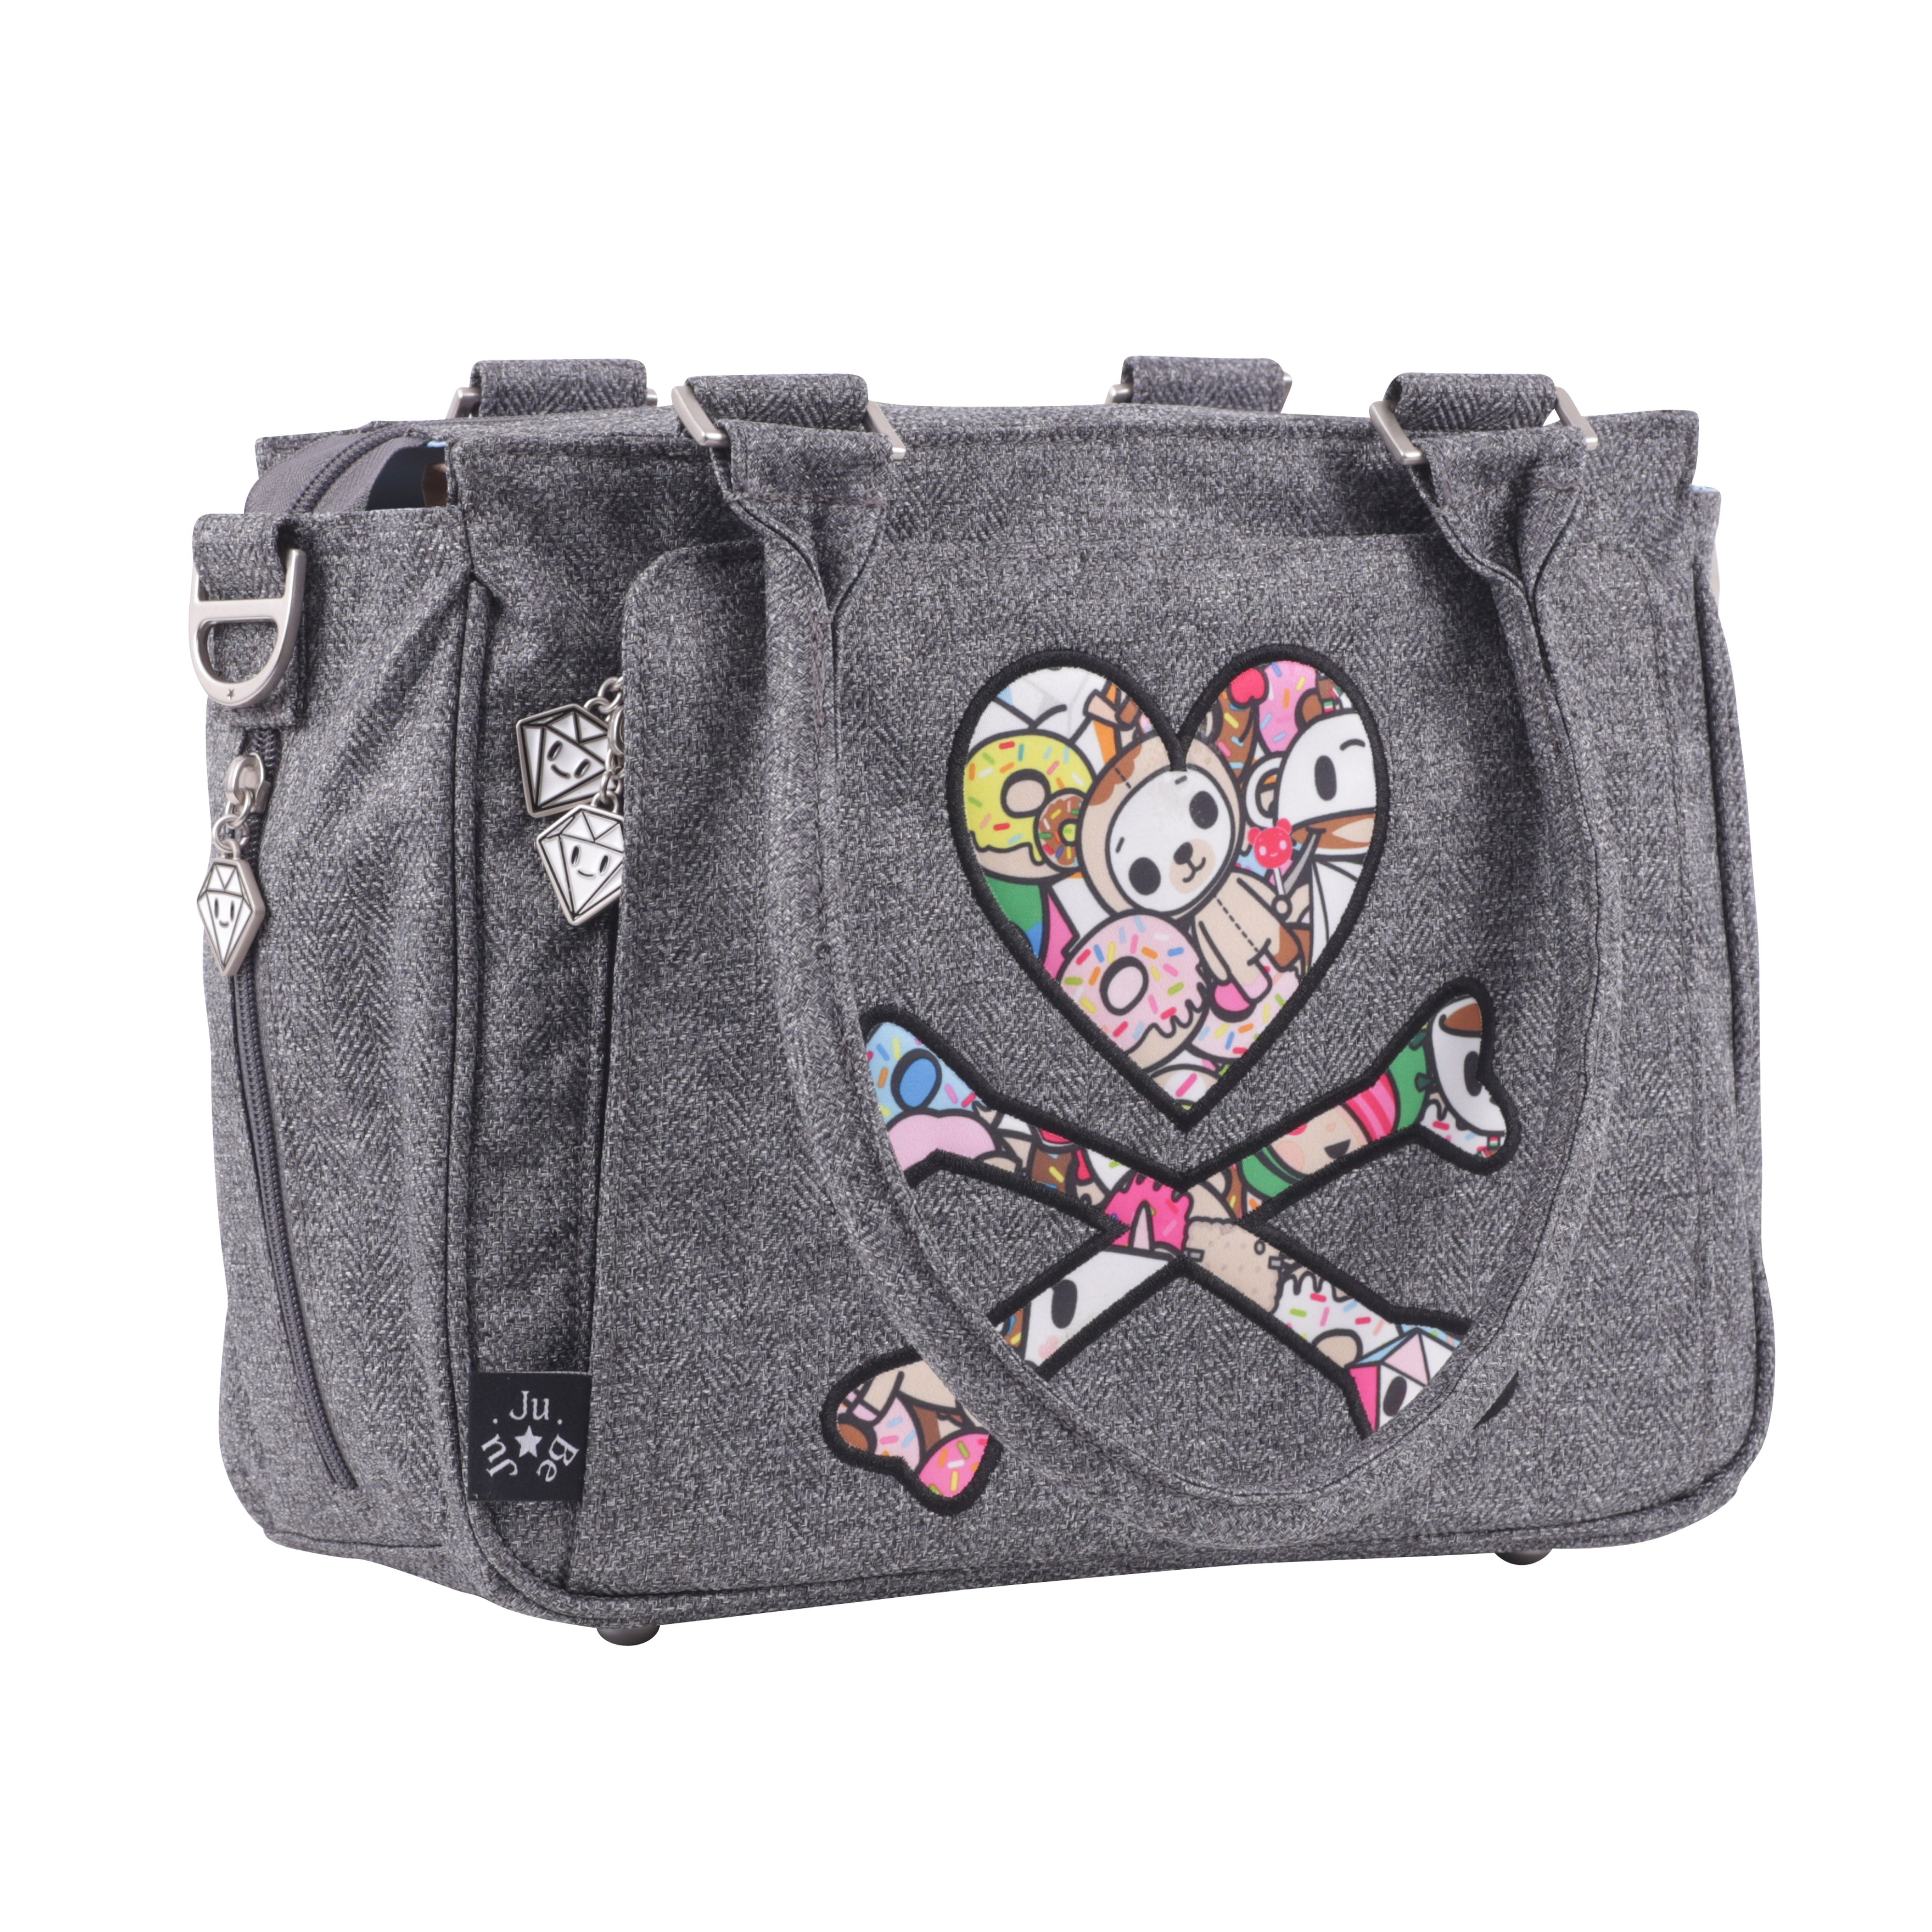 211afde97 Ju-Ju-Be x Tokidoki Changing Bag Be Sassy in TokiPops €134.95 / £125.00.  Mother bag